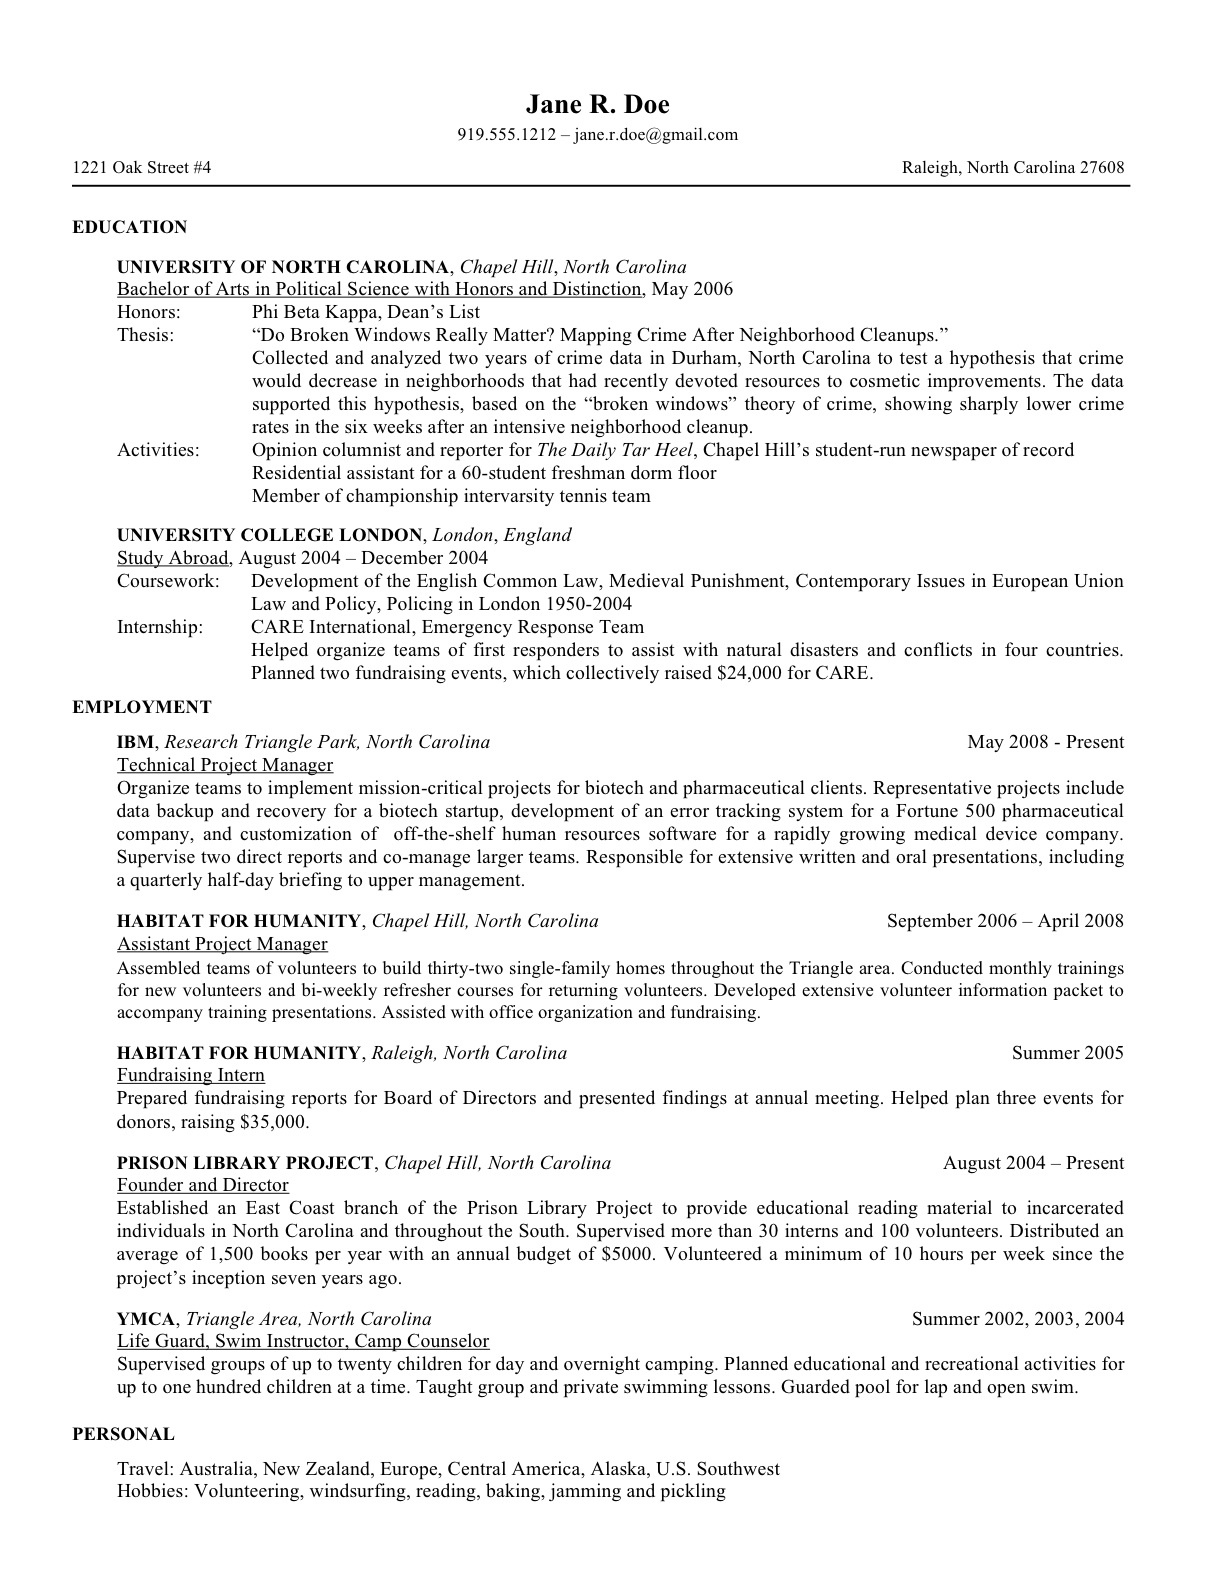 law school resume templates prepping your for of university at college application Resume College Application Resume Objective Statement